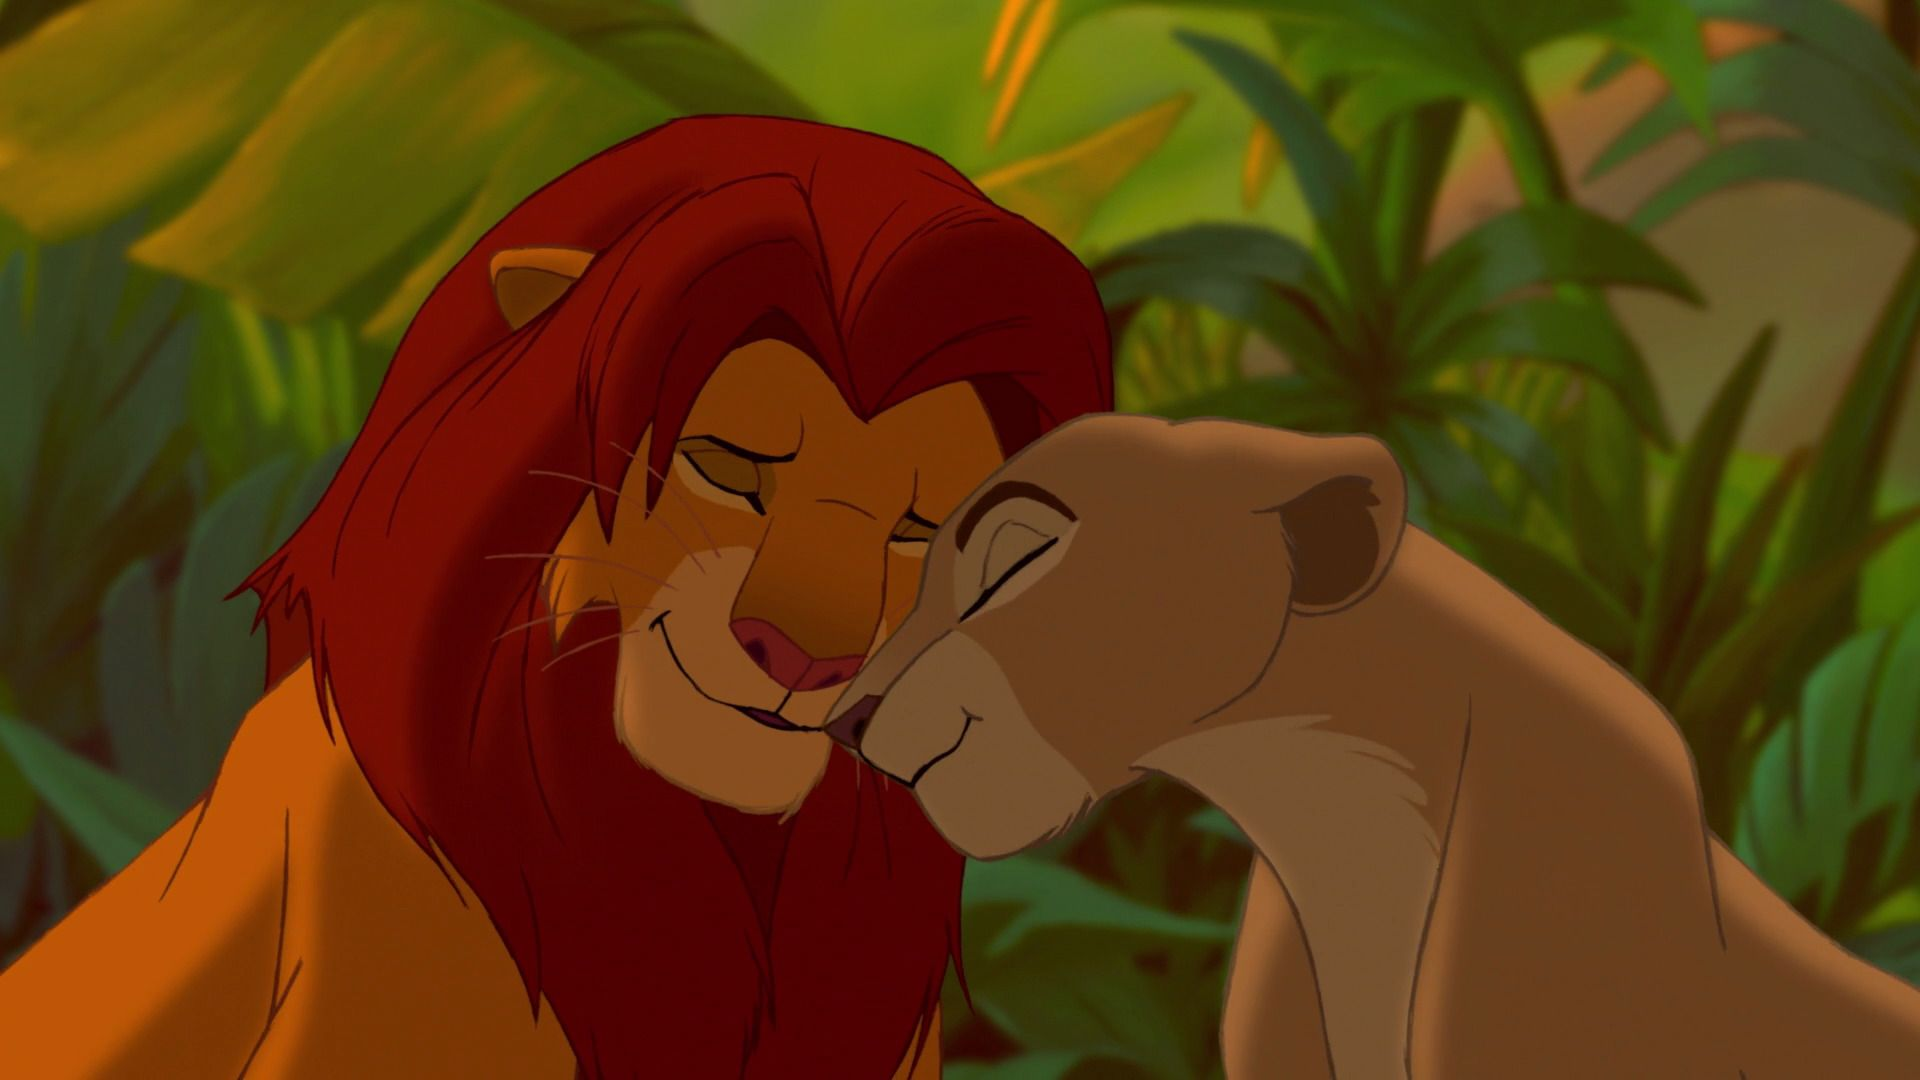 simba and nala nuzzling each other